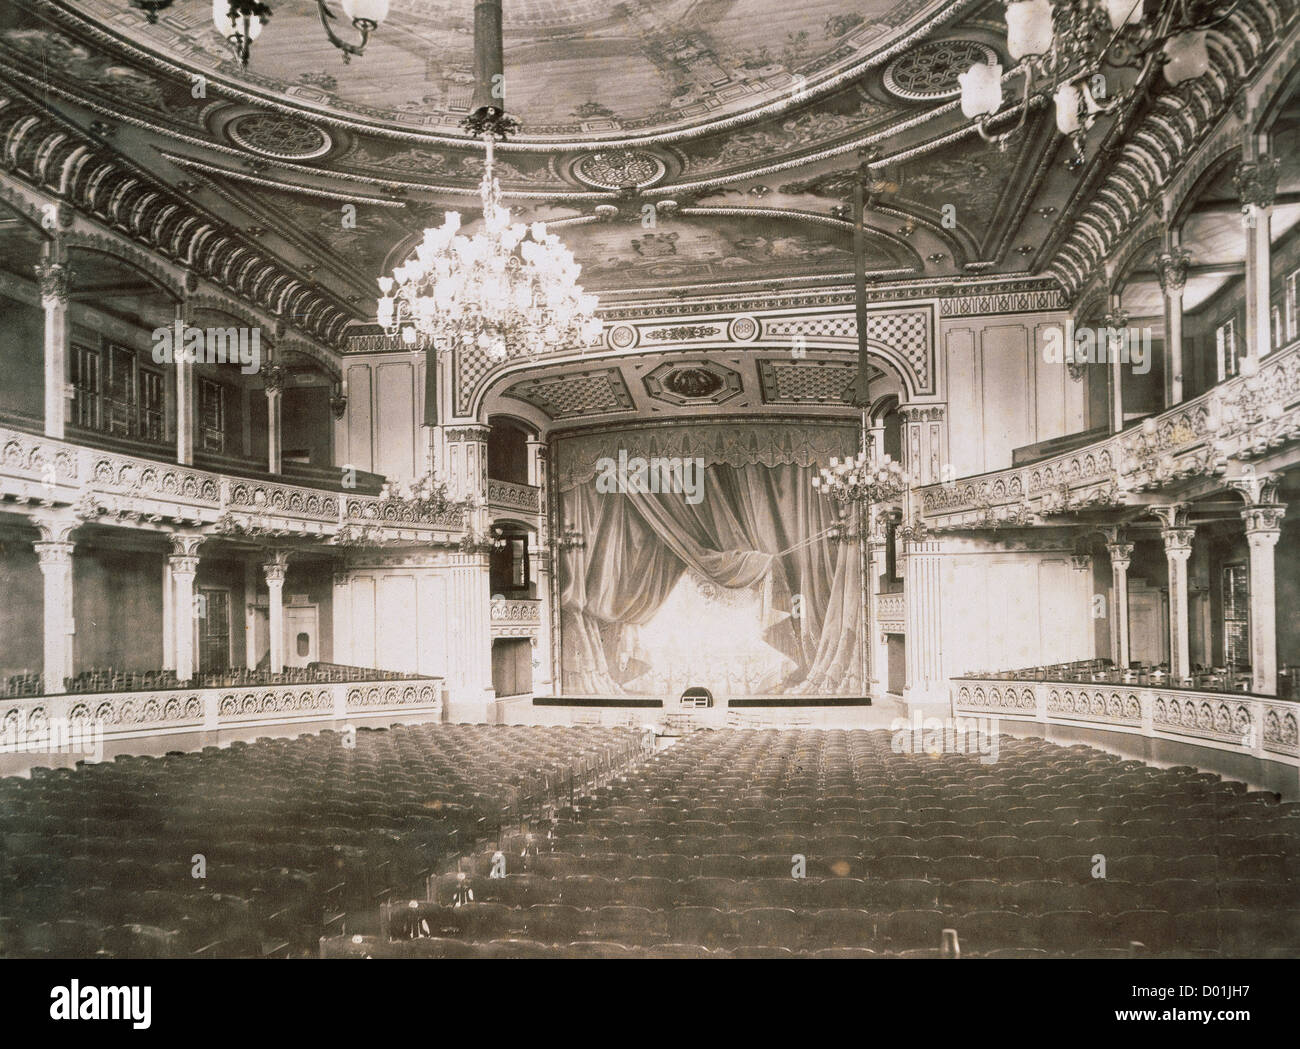 Spain. Catalonia. Barcelona. Lyric Theatre or Lyric Theatre. Beethoven room. Ancient hall and stage. Archive. Library - Stock Image